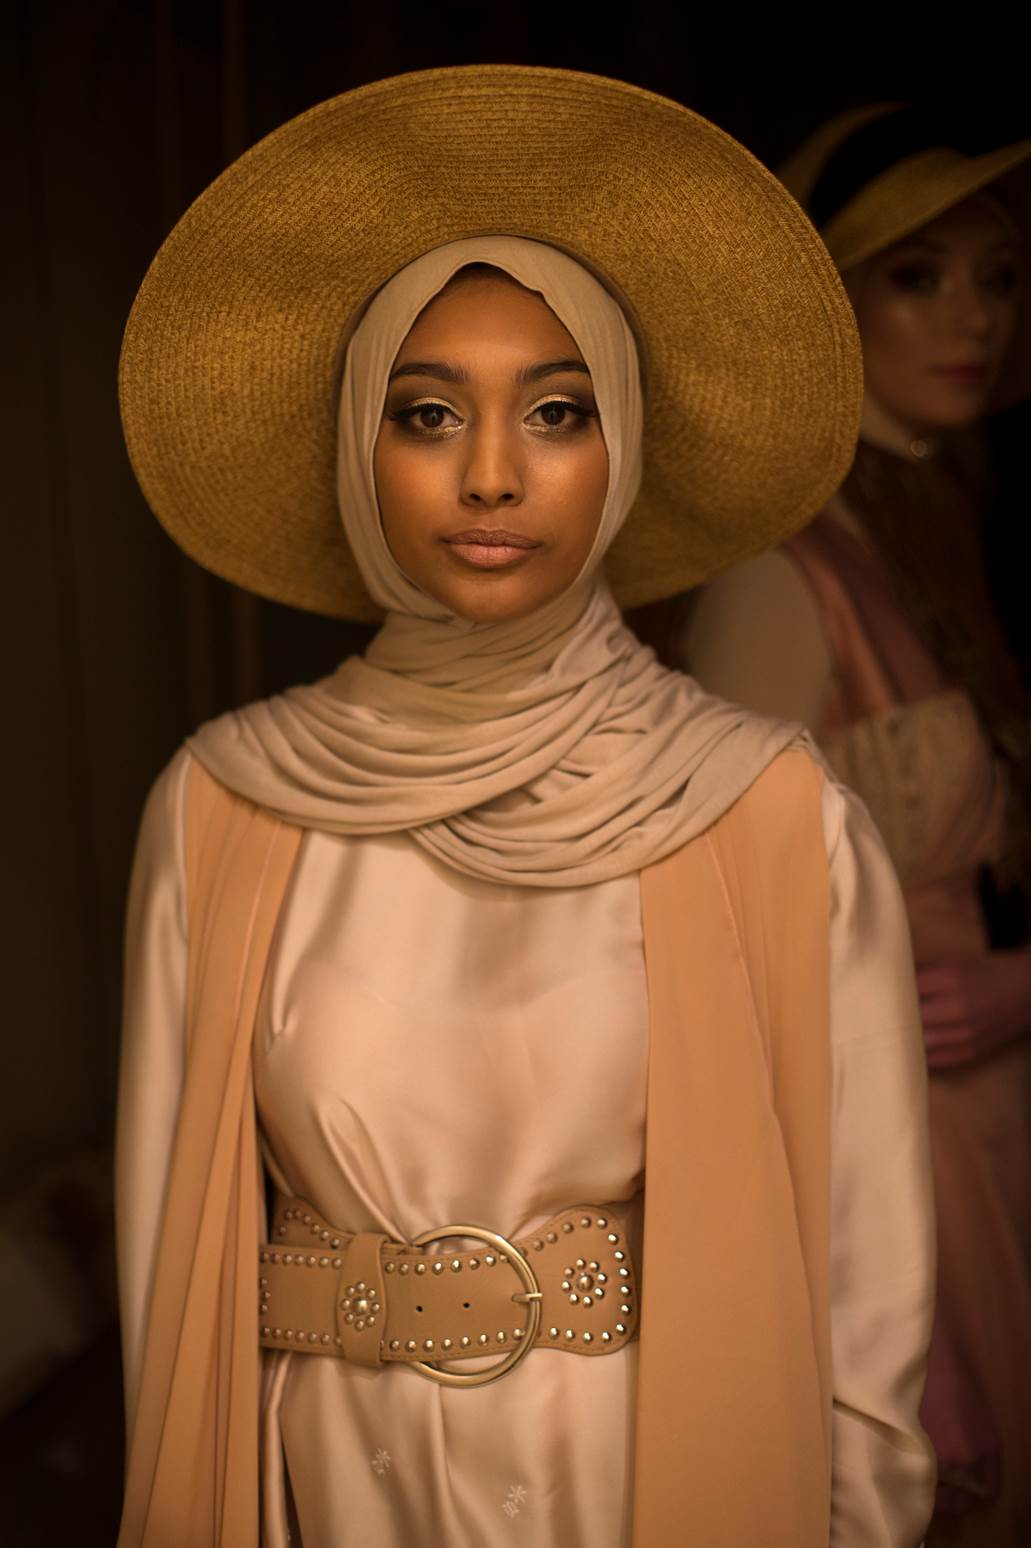 """BACKSTAGE BEFORE THE """"HIJAB RUNWAY"""" CREATIVITY UNLEASHED EXPO, PARRAMATA TOWN HALL, 2015, pigment print on cotton rag, $ 250"""